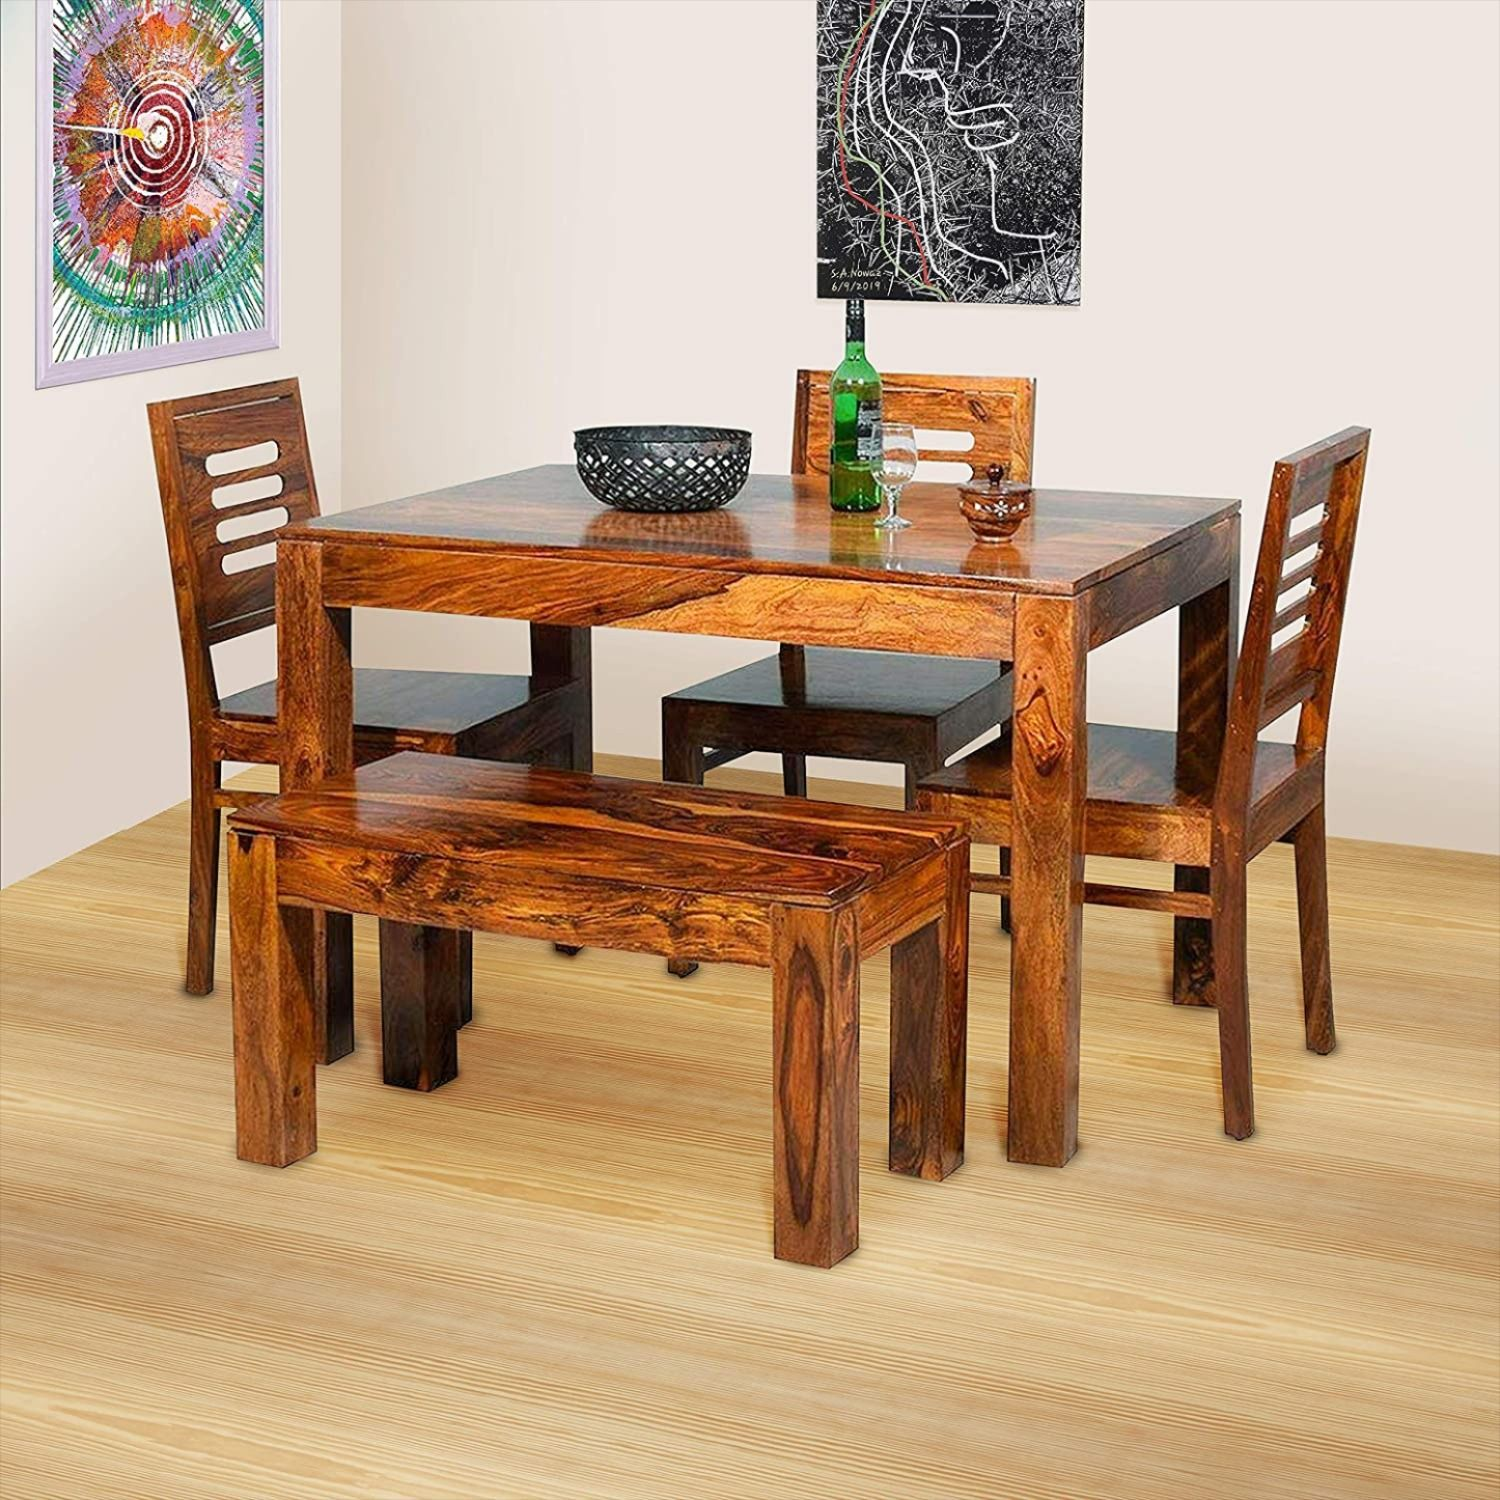 20++ 4 seater dining table with bench Best Seller